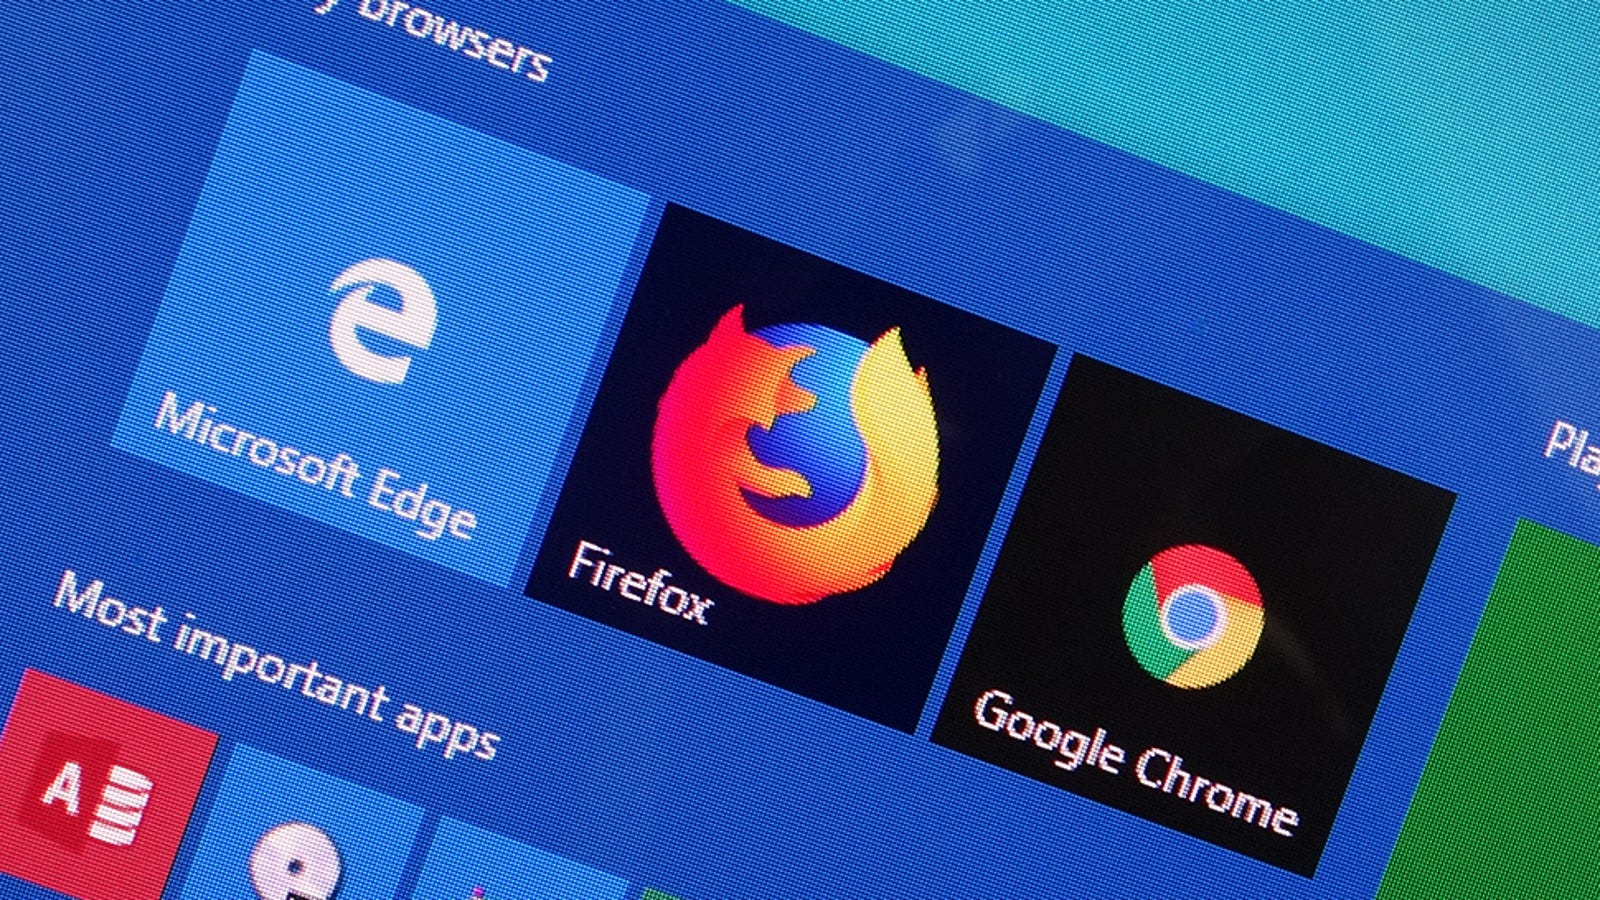 9 Common Browser Problems and How to Fix Them